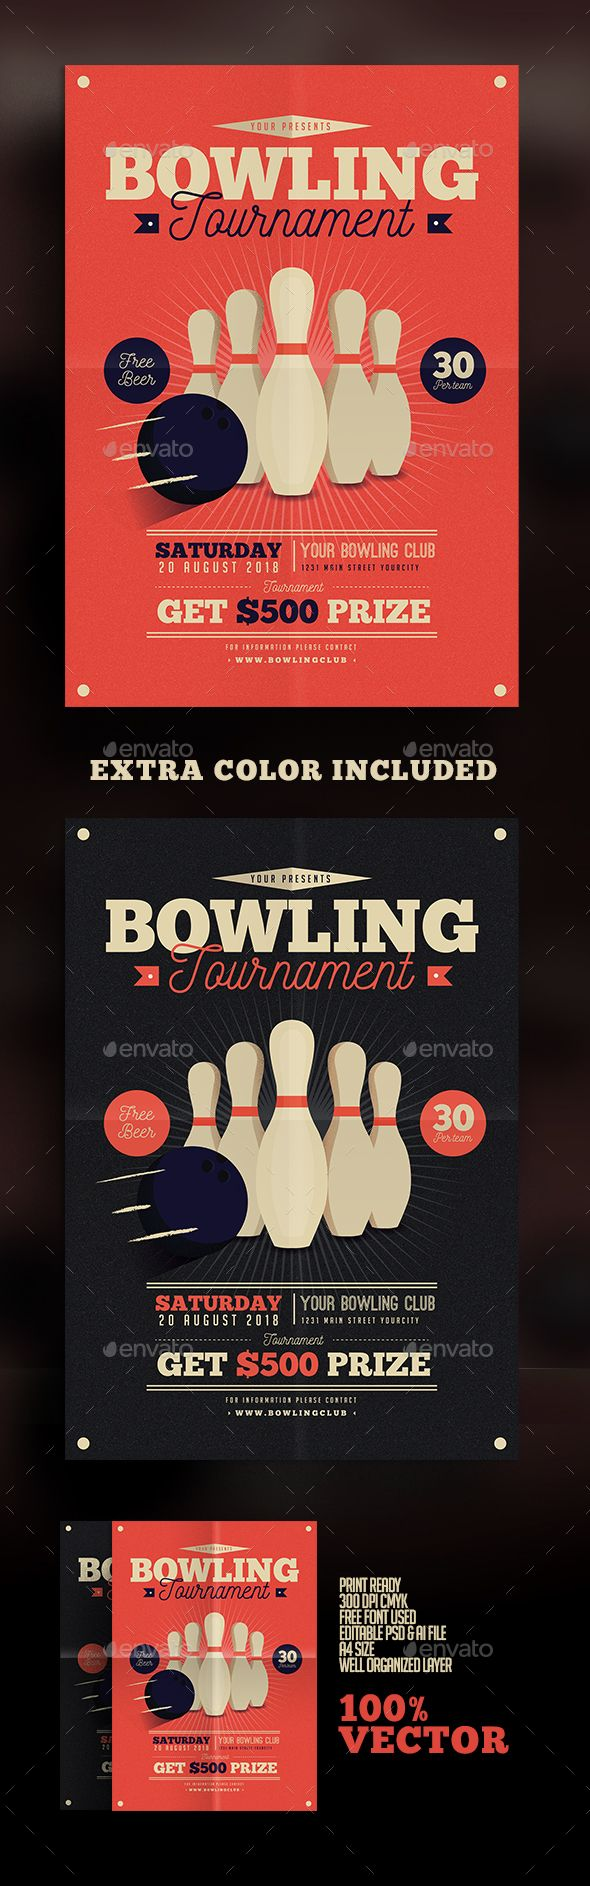 Vintage Bowling Tournament Flyer Template PSD, Vector AI. Download here: http://graphicriver.net/item/vintage-bowling-tournament-flyer/15587134?ref=ksioks